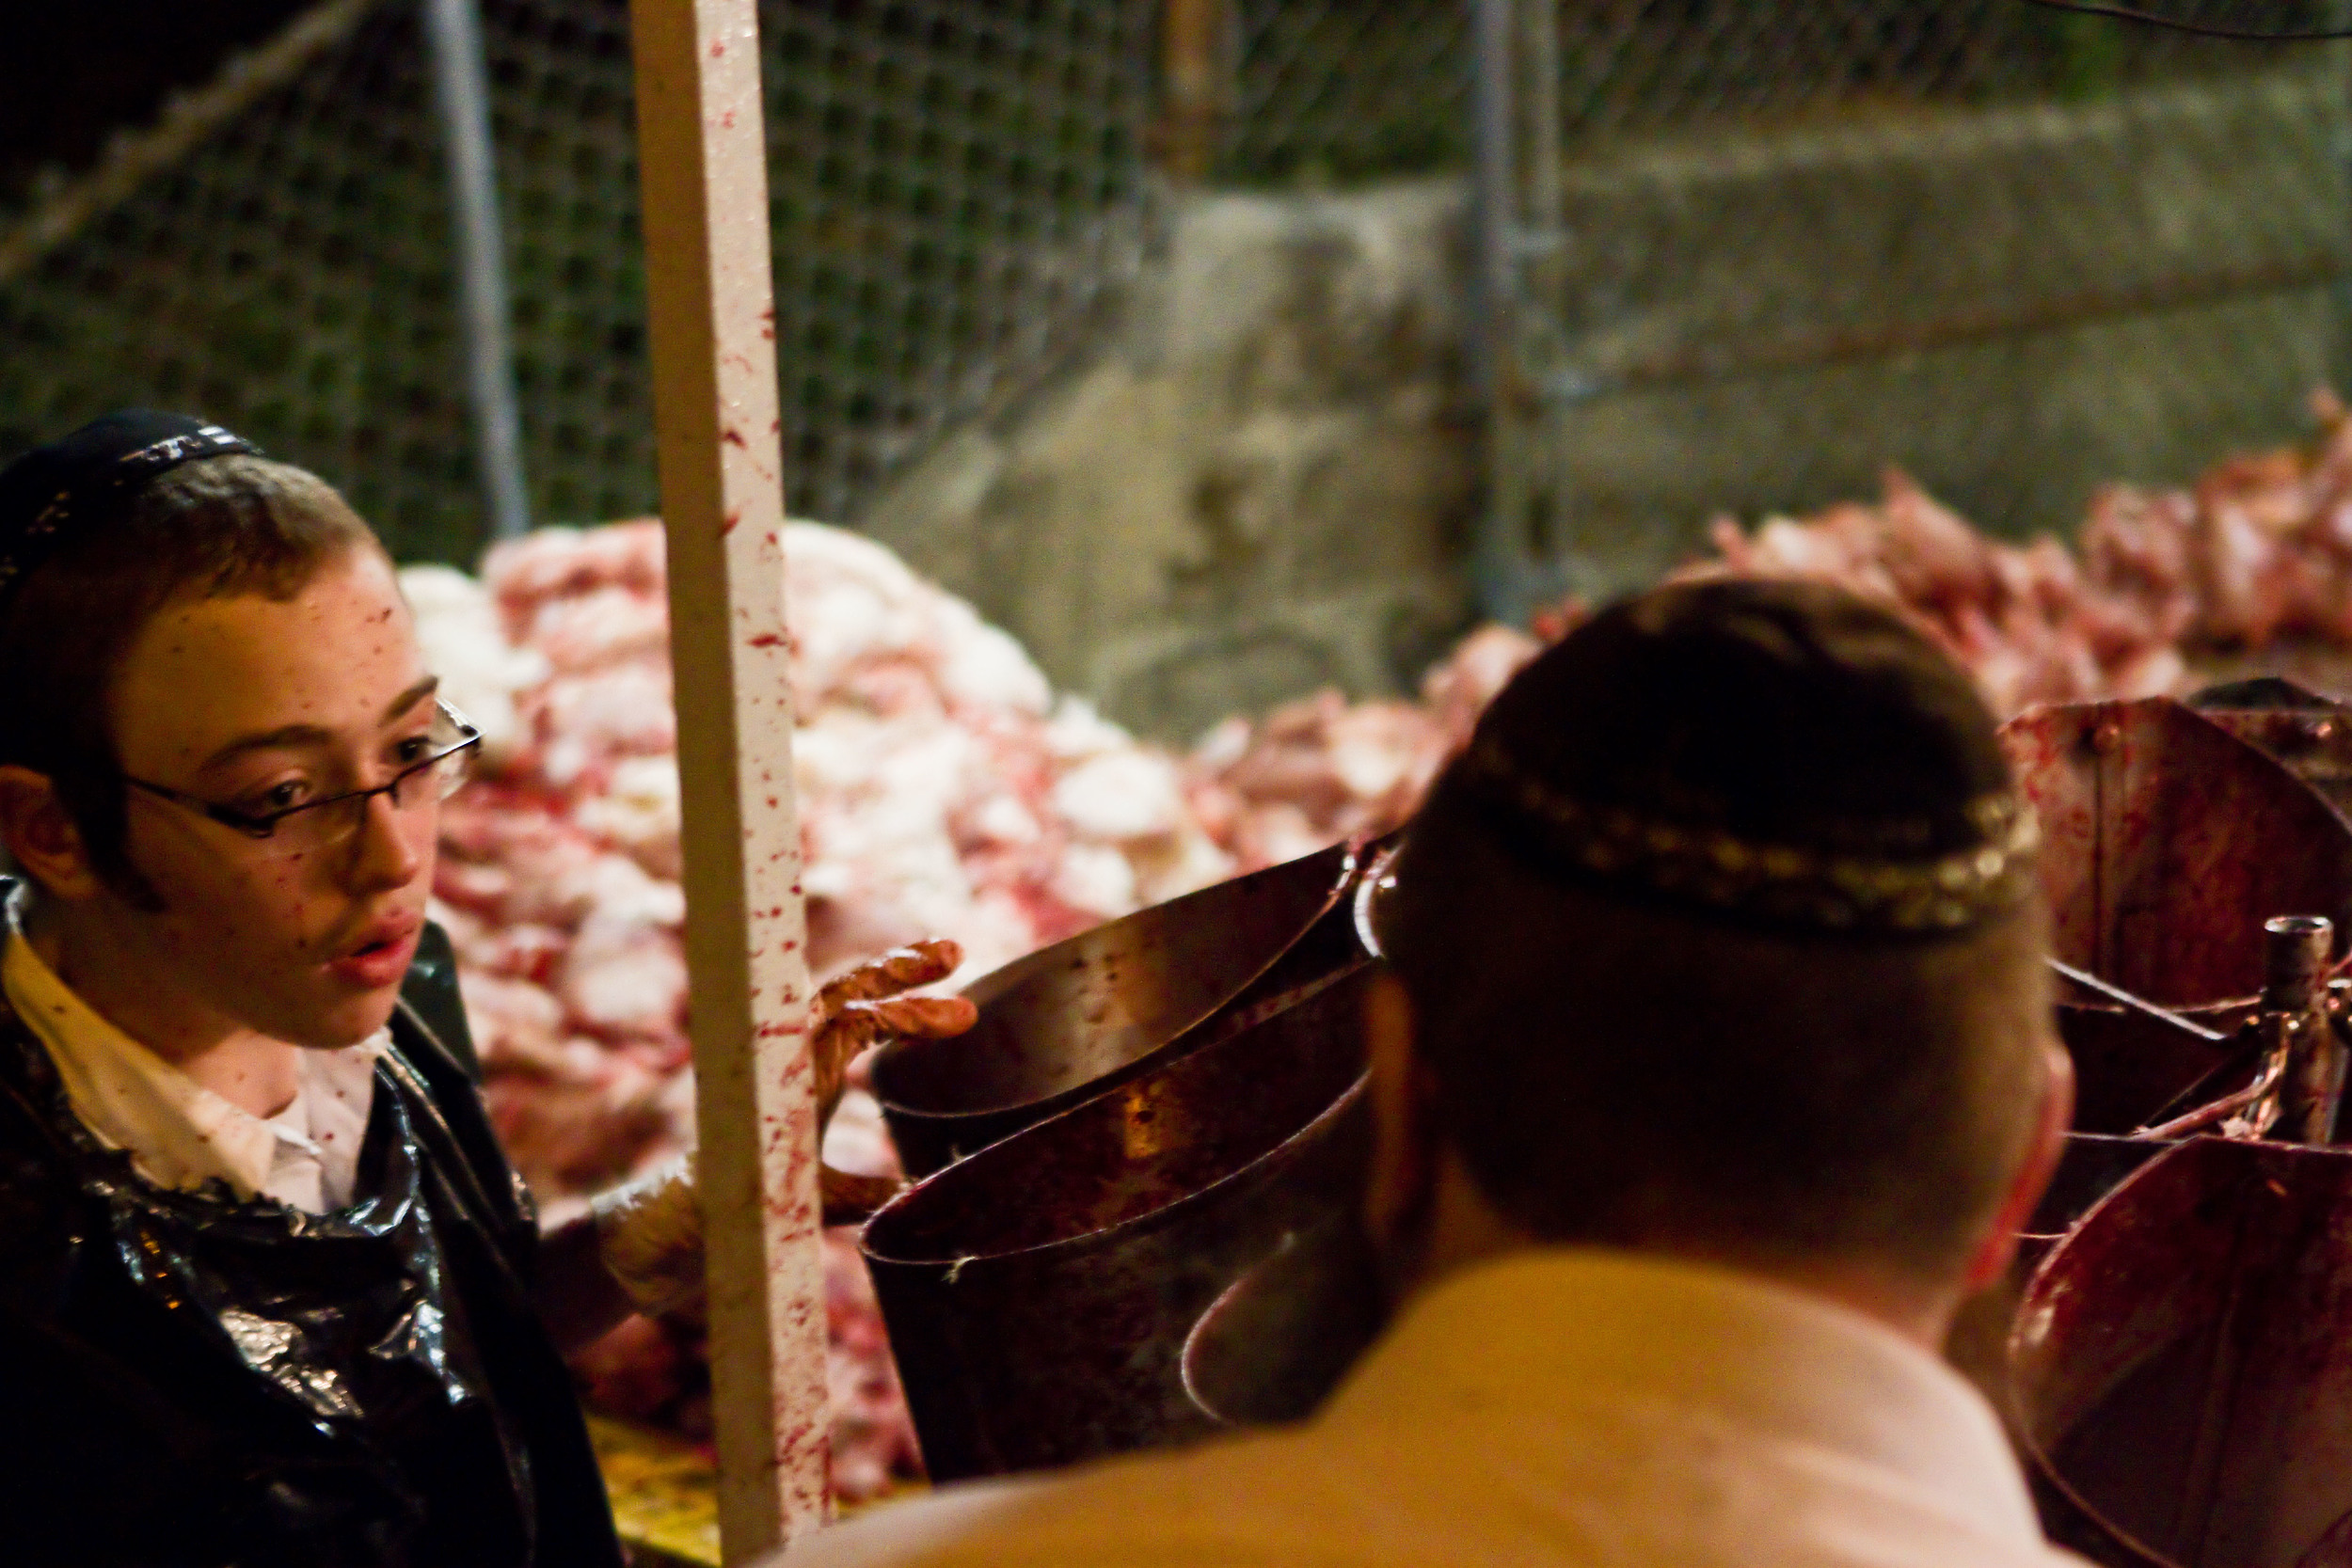 The faces of many of those handling the chickens become splattered with blood.